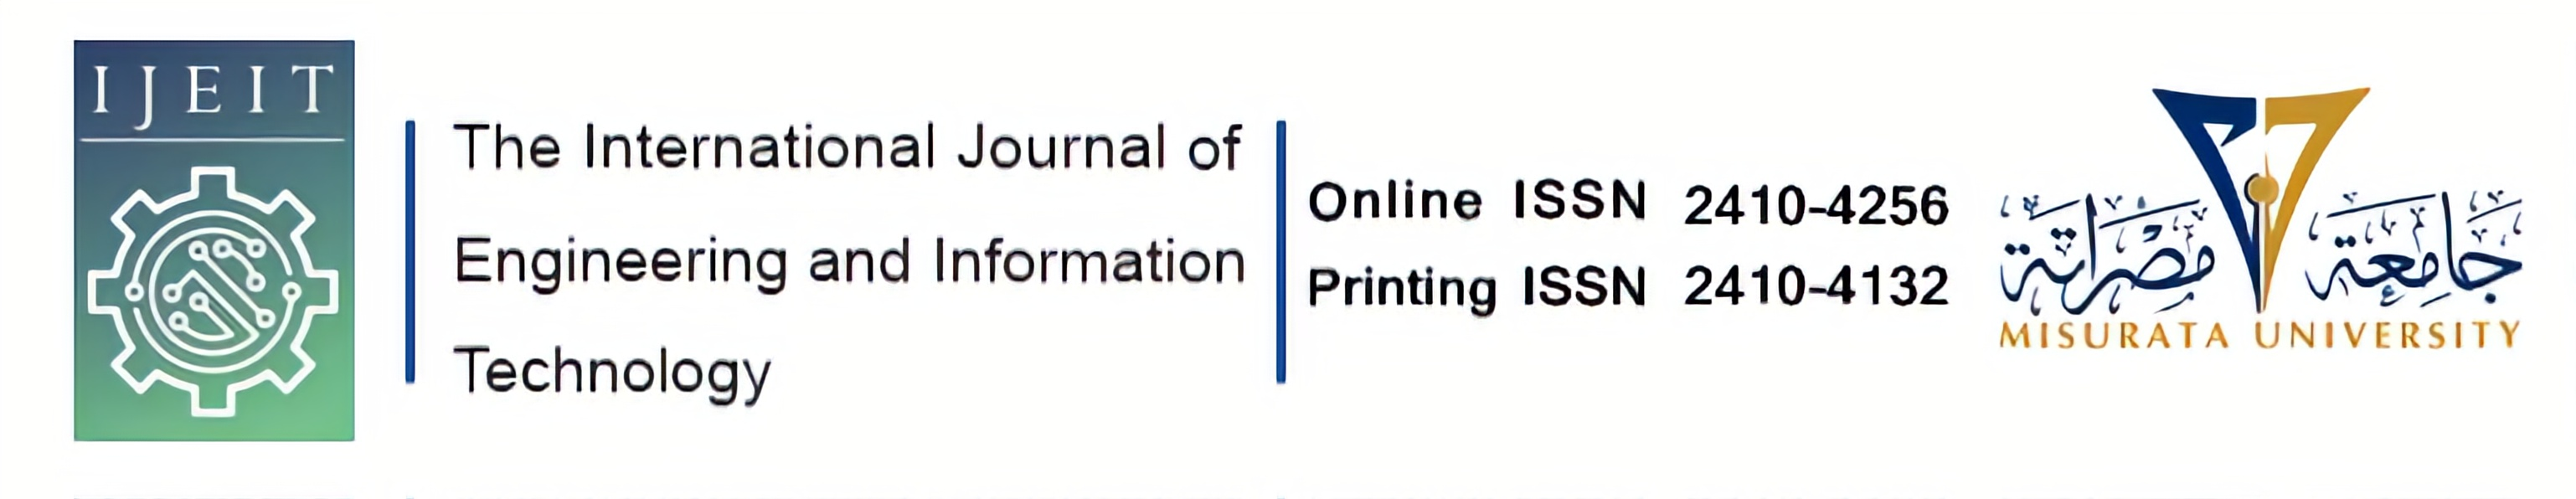 The International Journal of Engineering and Information Technology